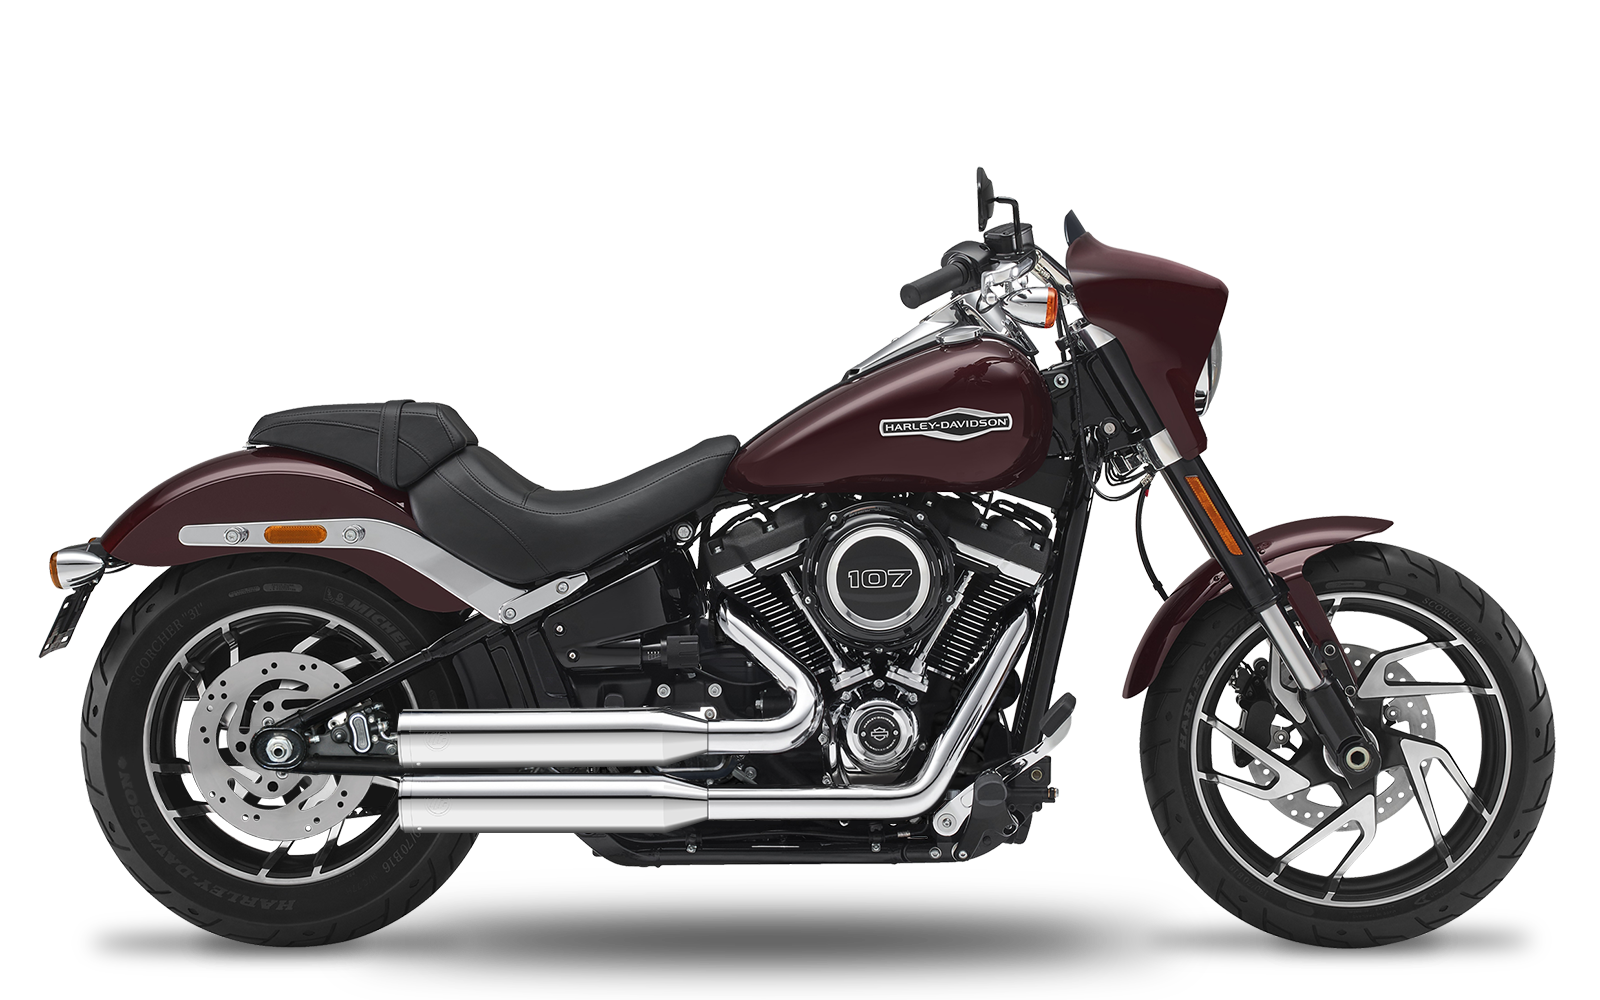 Softail - Sport Glide - ME107 - 2021 - Complete systems